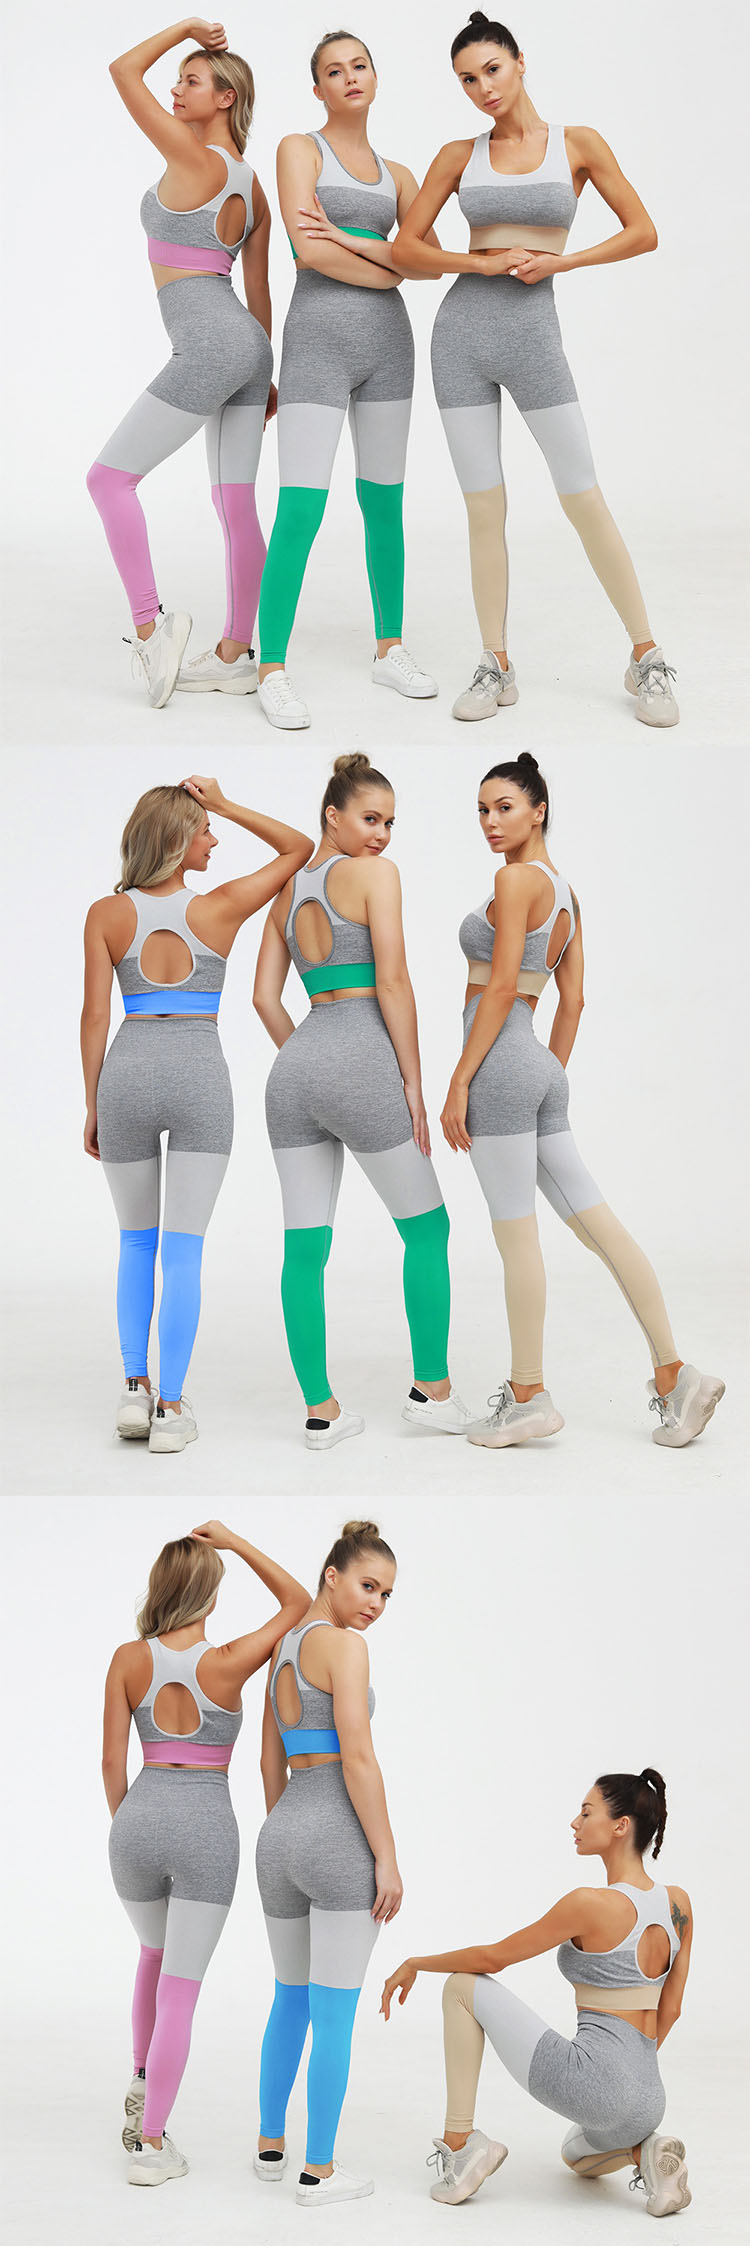 The seam leggings presents a very eye-catching visual effect.